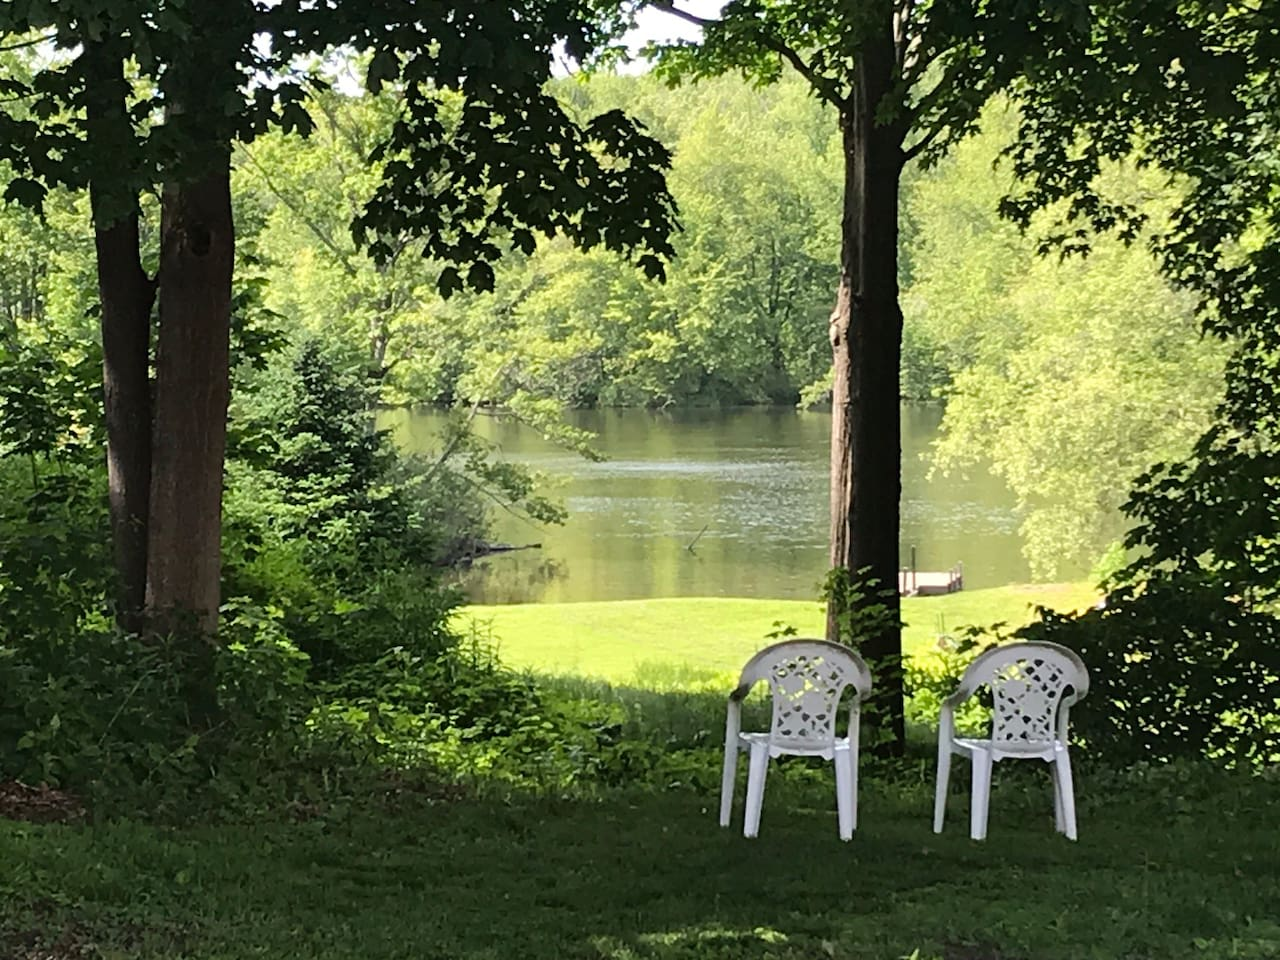 We don't have river access but the view from the backyard is lovely .